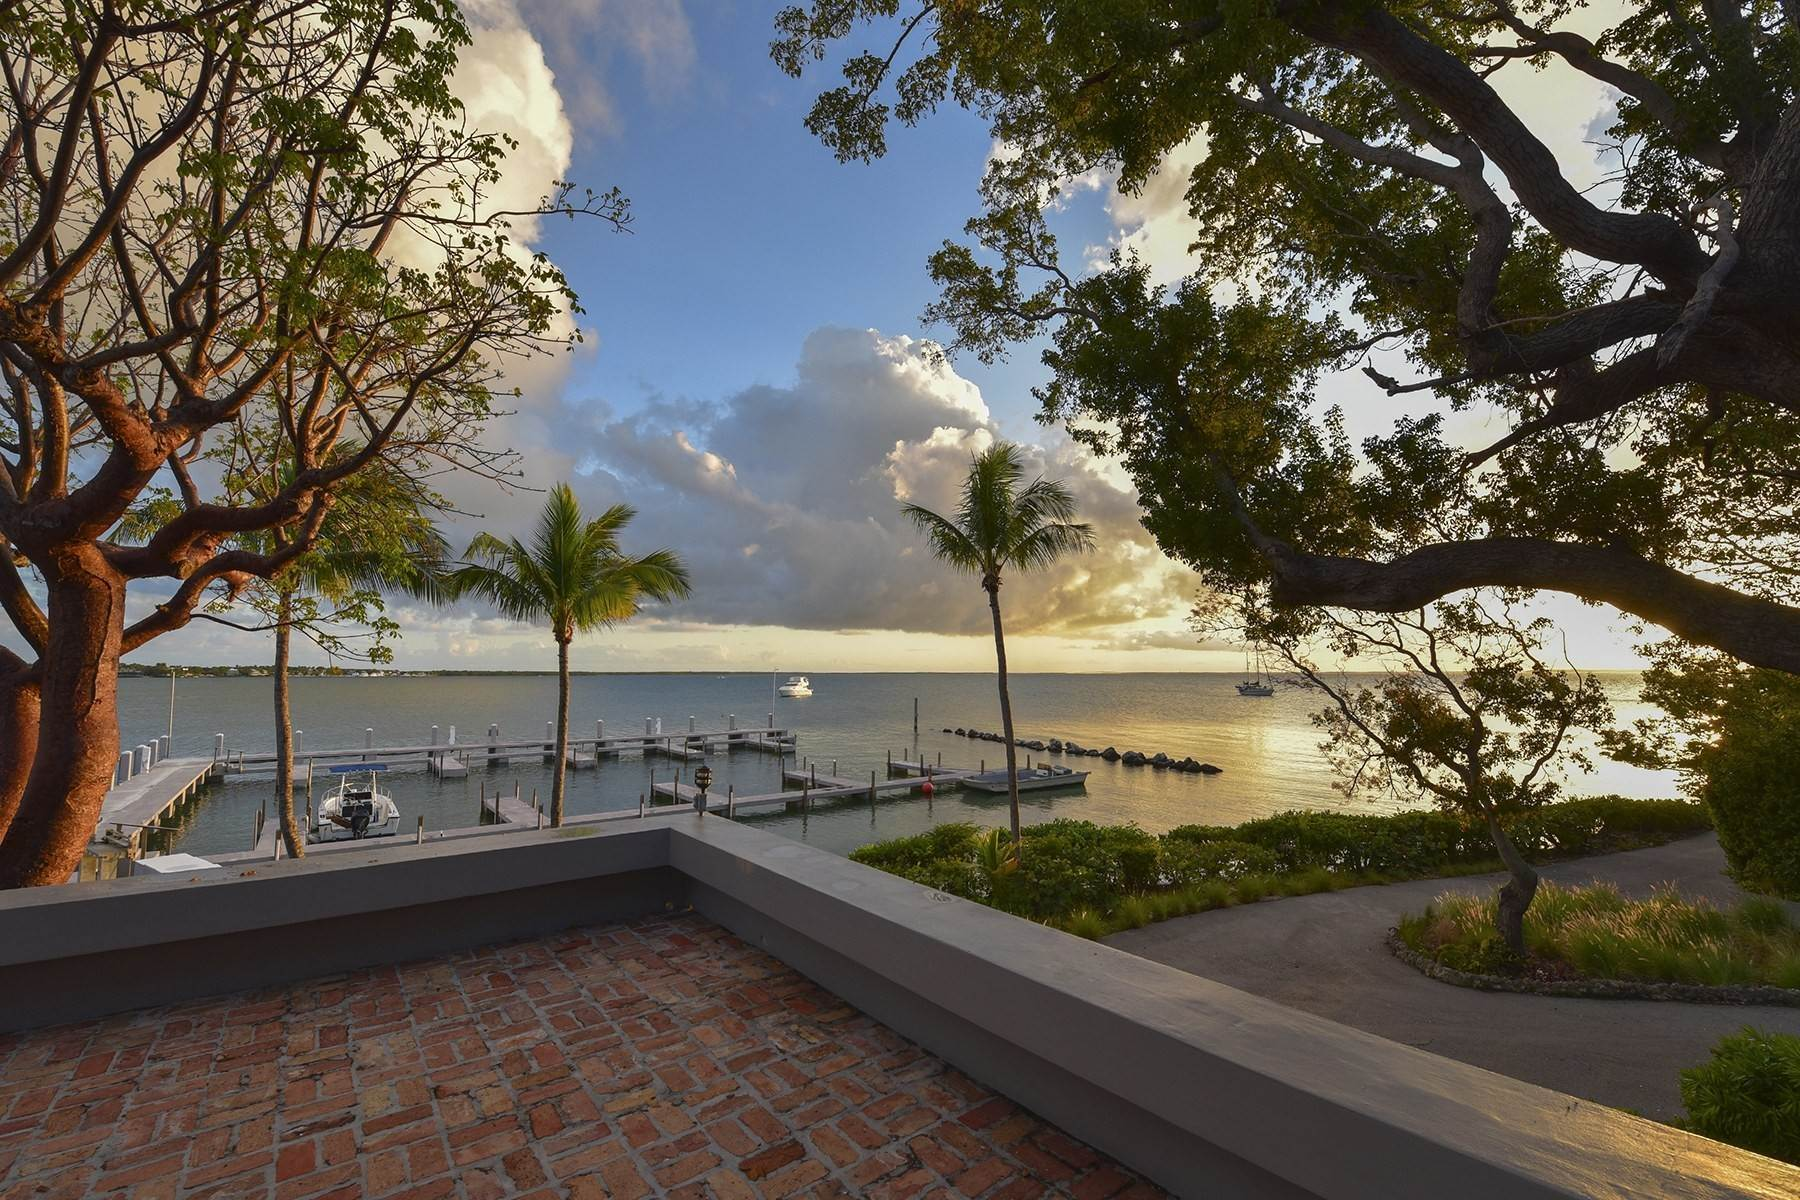 4. Property for Sale at Pumpkin Key - Private Island, Key Largo, FL Pumpkin Key - Private Island Key Largo, Florida 33037 United States